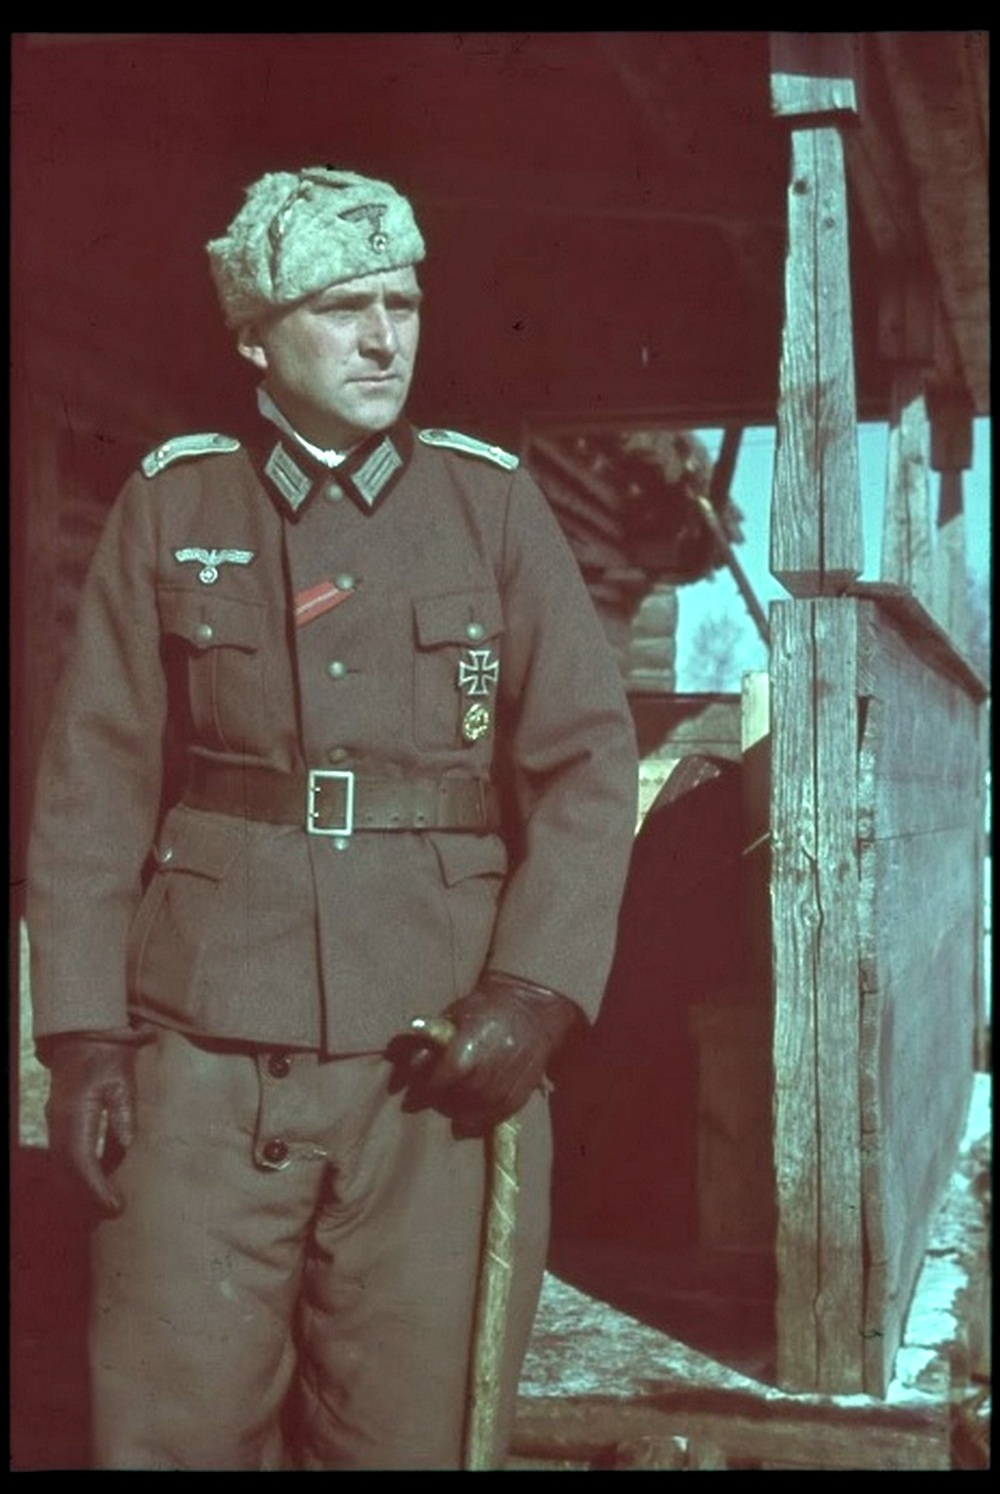 Color photographs of a soldier of the 78th Wehrmacht infantry division